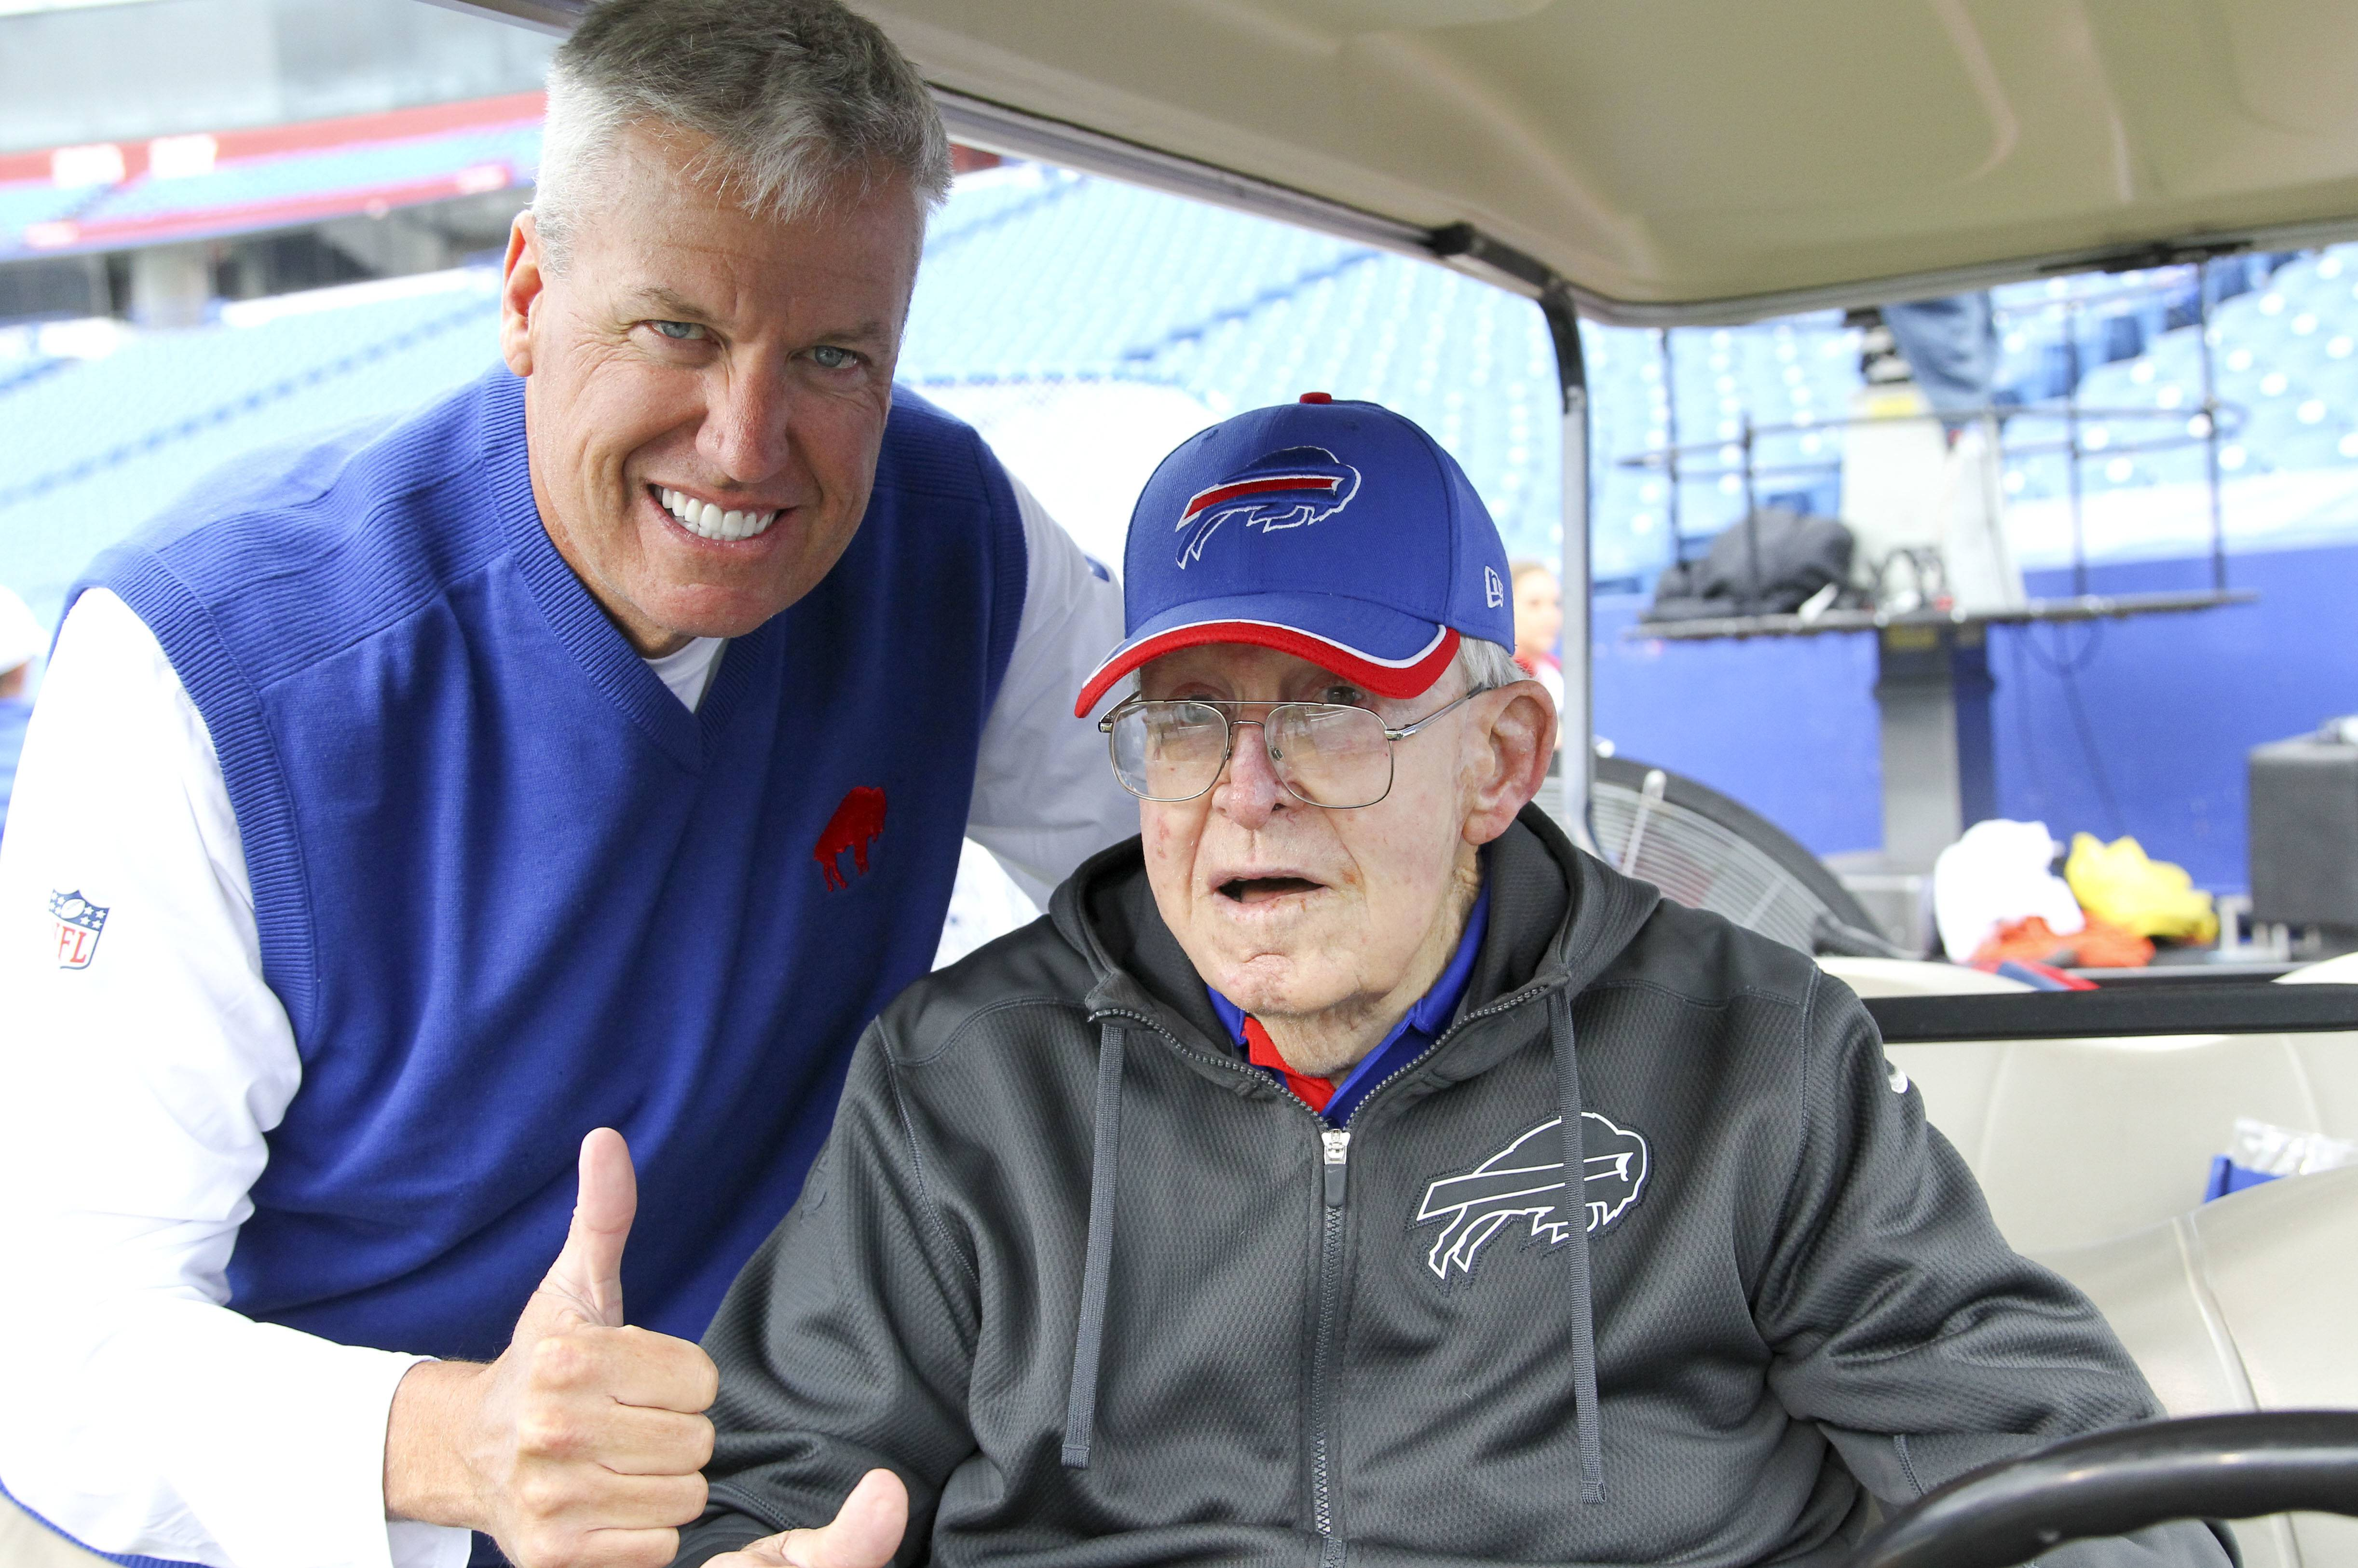 FILE - In this Sept. 13, 2015, file photo, Buffalo Bills head coach Rex Ryan, left, visits with his father Buddy Ryan before an NFL football game against the Indianapolis Colts in Orchard Park, N.Y. Buddy Ryan, who coached two defenses that won Super Bowl titles and whose twin sons Rex and Rob have been successful NFL coaches, died Tuesday, June 28, 2016. He was 82. (AP Photo/Bill Wippert, File)